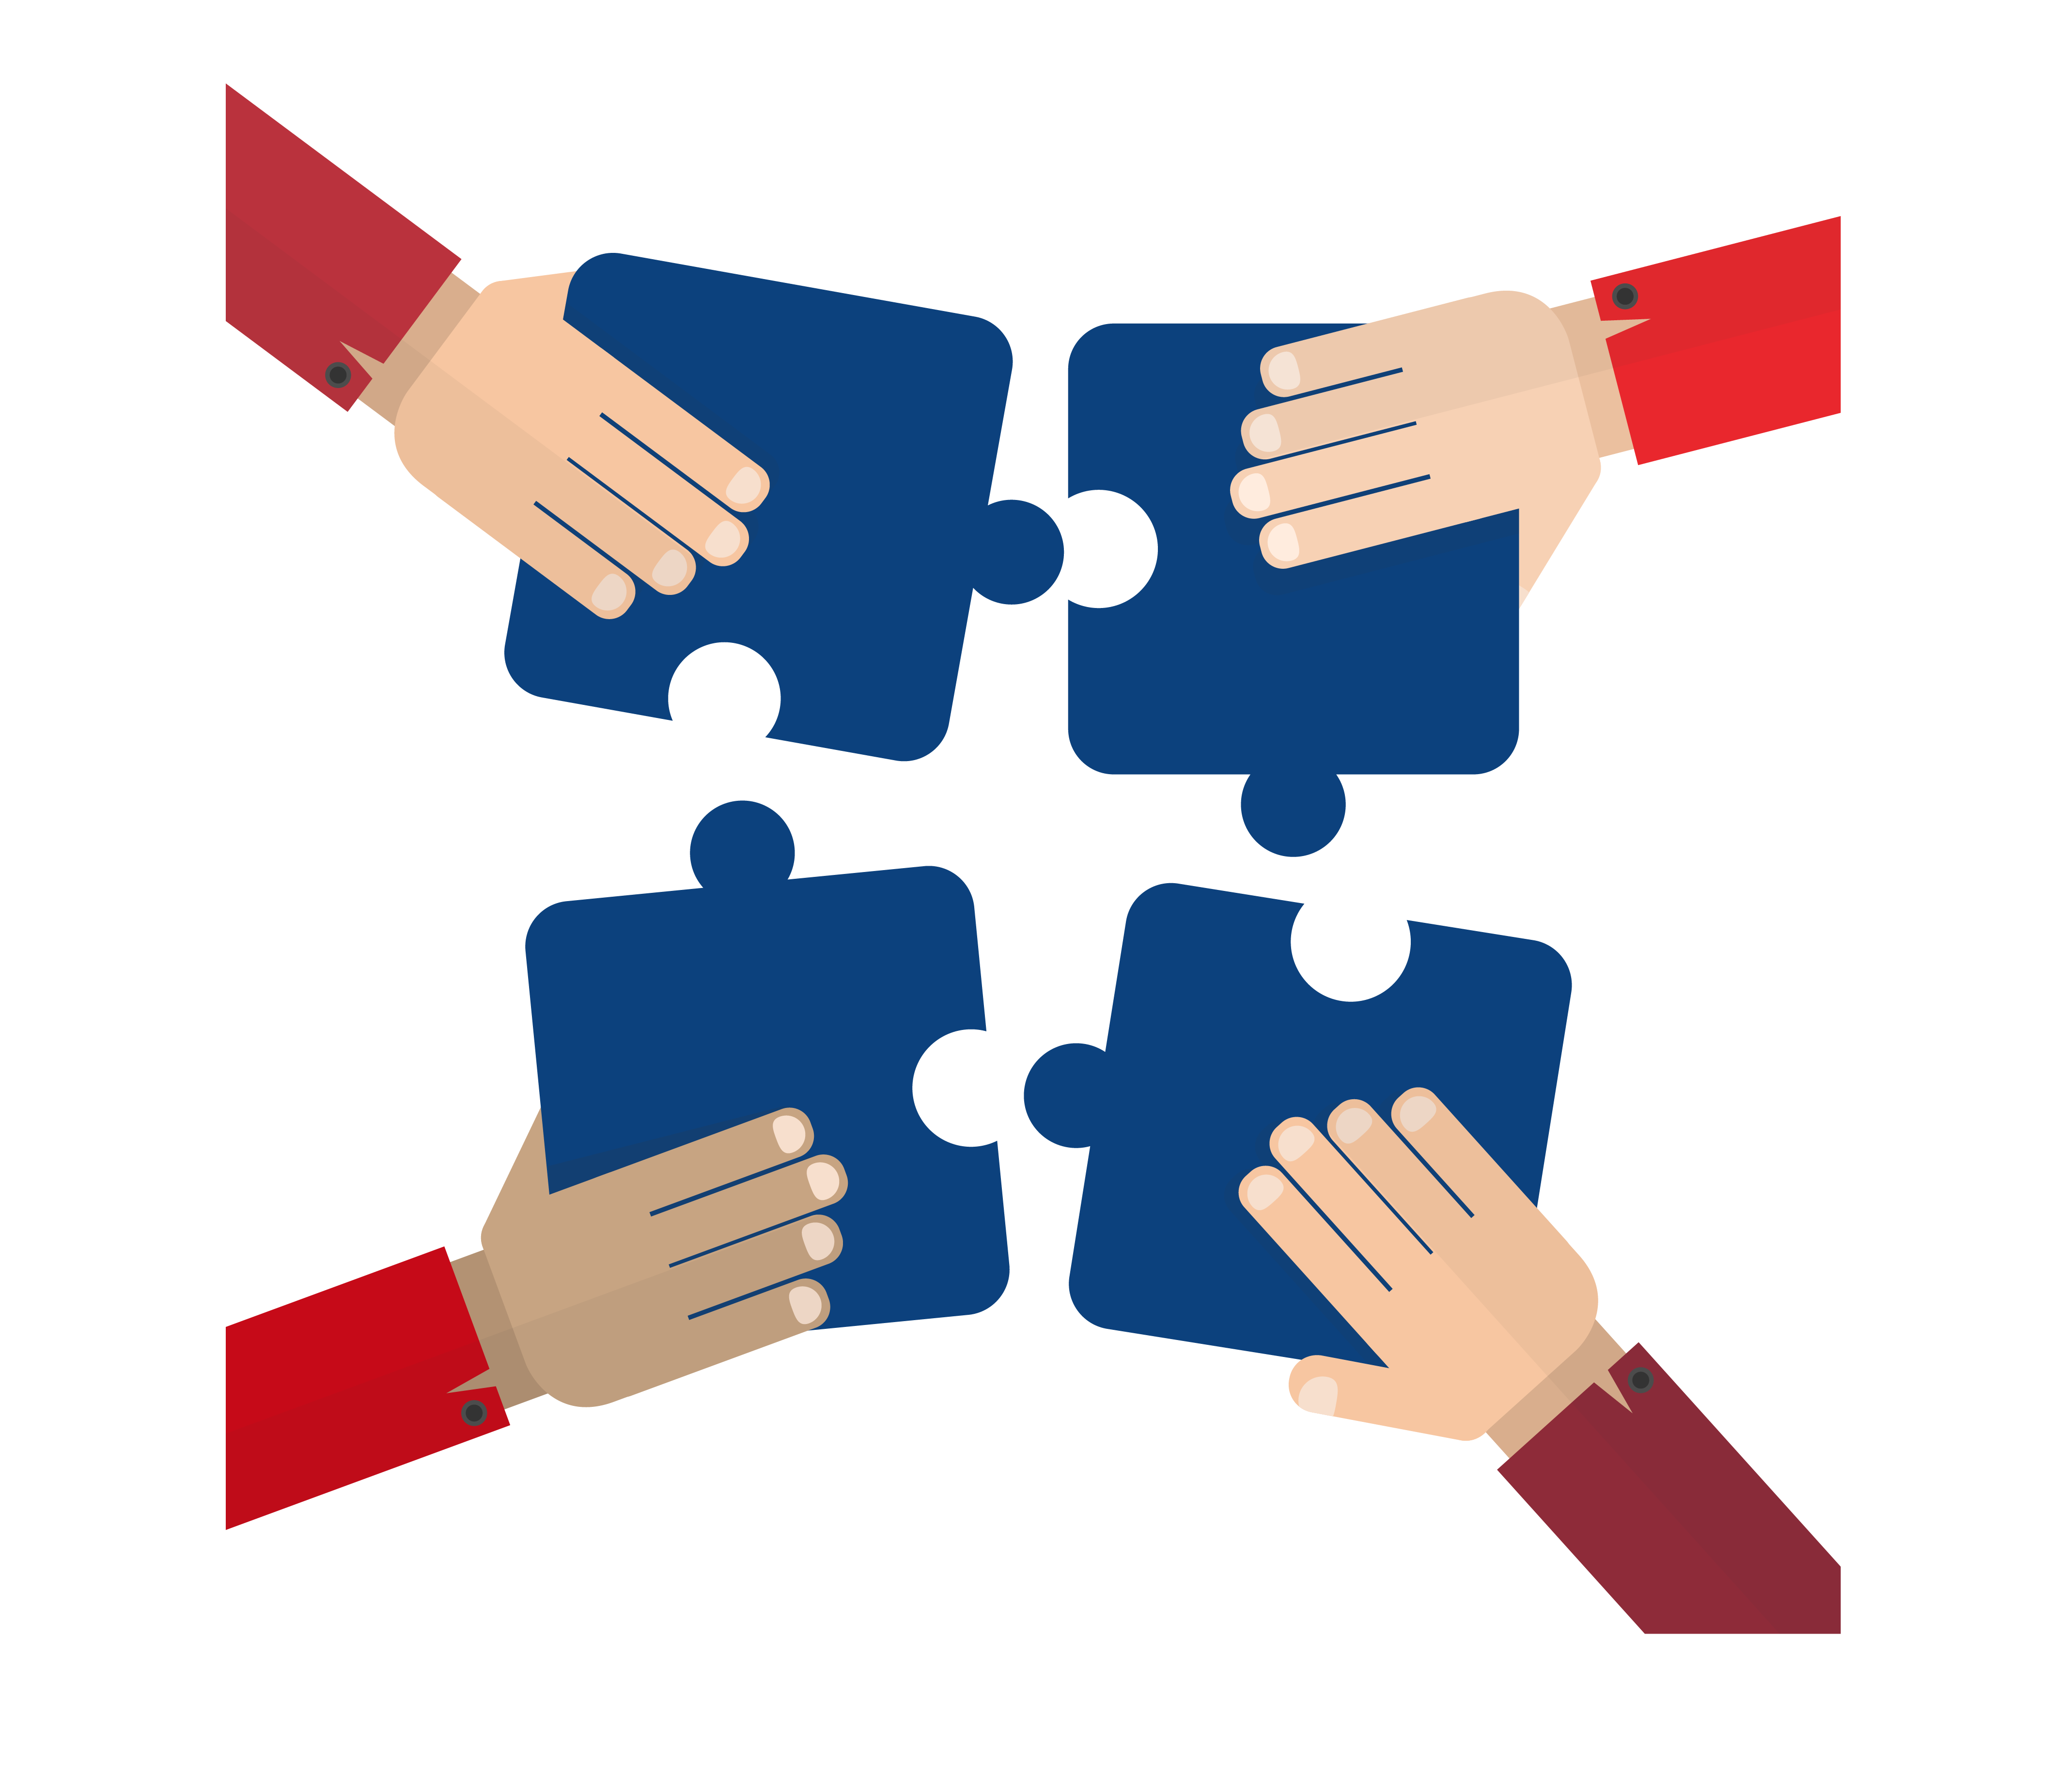 Teamwork clipart team unity. Development solutions and more